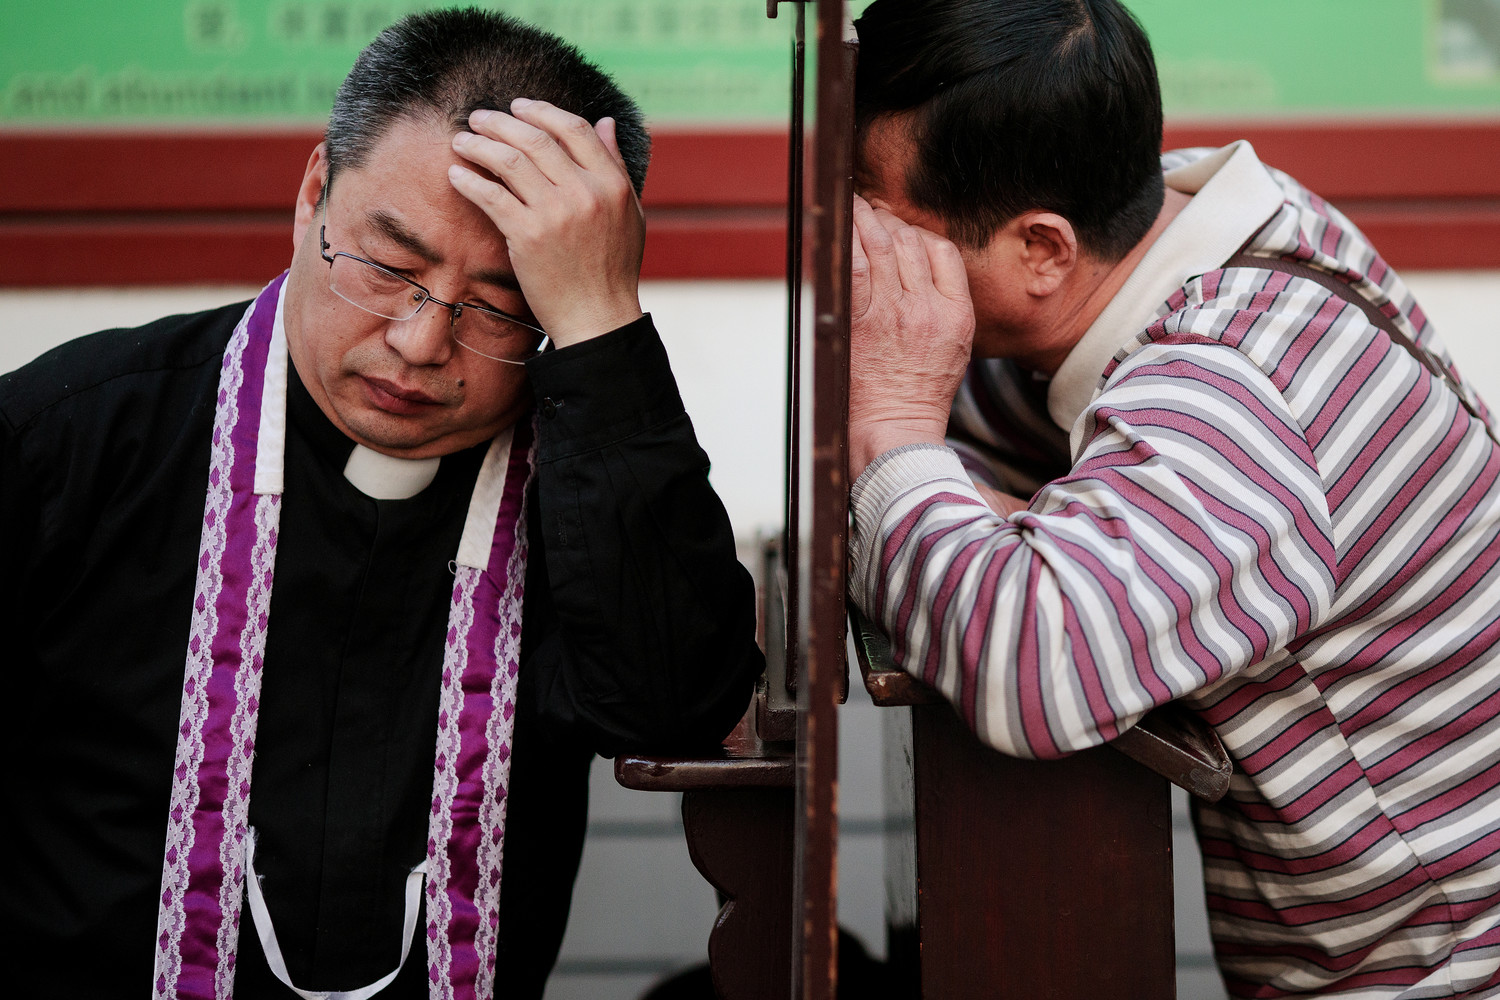 A priest hears confession on Holy Thursday, March 29, at the Cathedral of the Immaculate Conception in Beijing. For the first time in decades, all of the Catholic bishops in China are in full communion with the Pope, the Vatican announced Sept. 22.